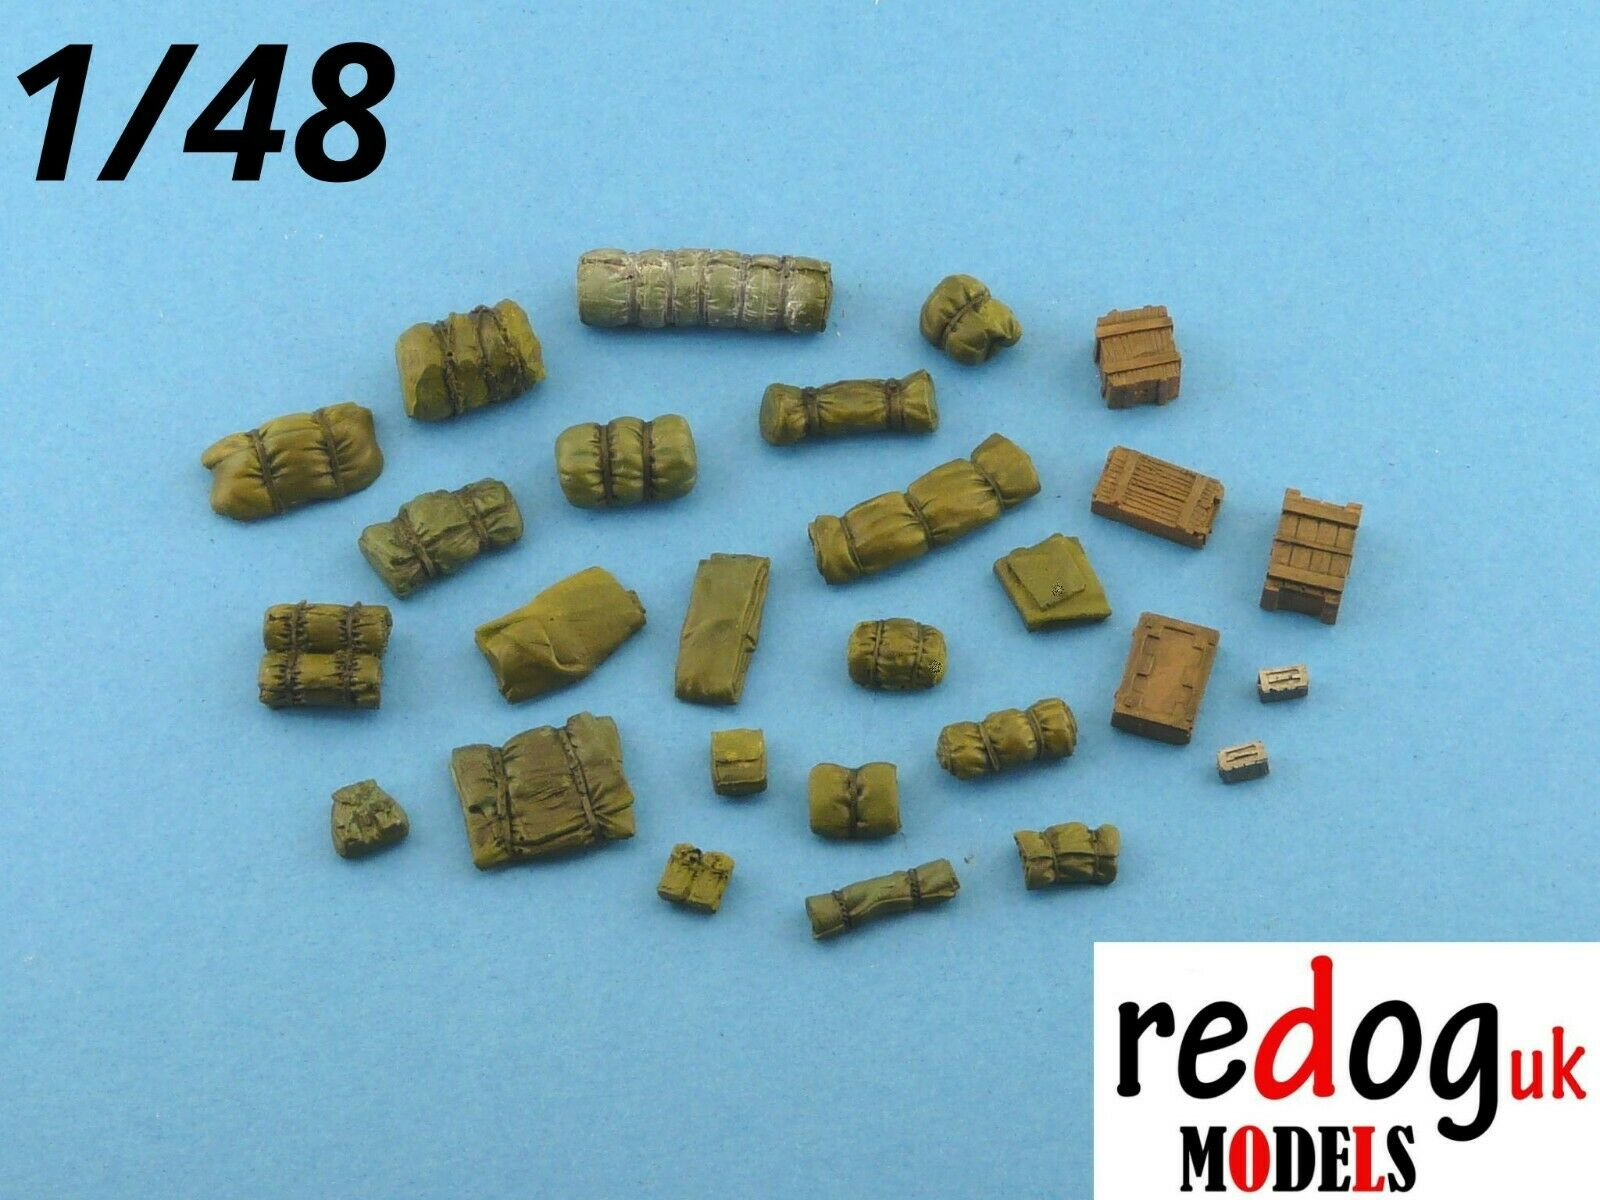 1/48  Military Scale Modelling Resin Stowage Kit Diorama Accessories Kit 1 - redoguk